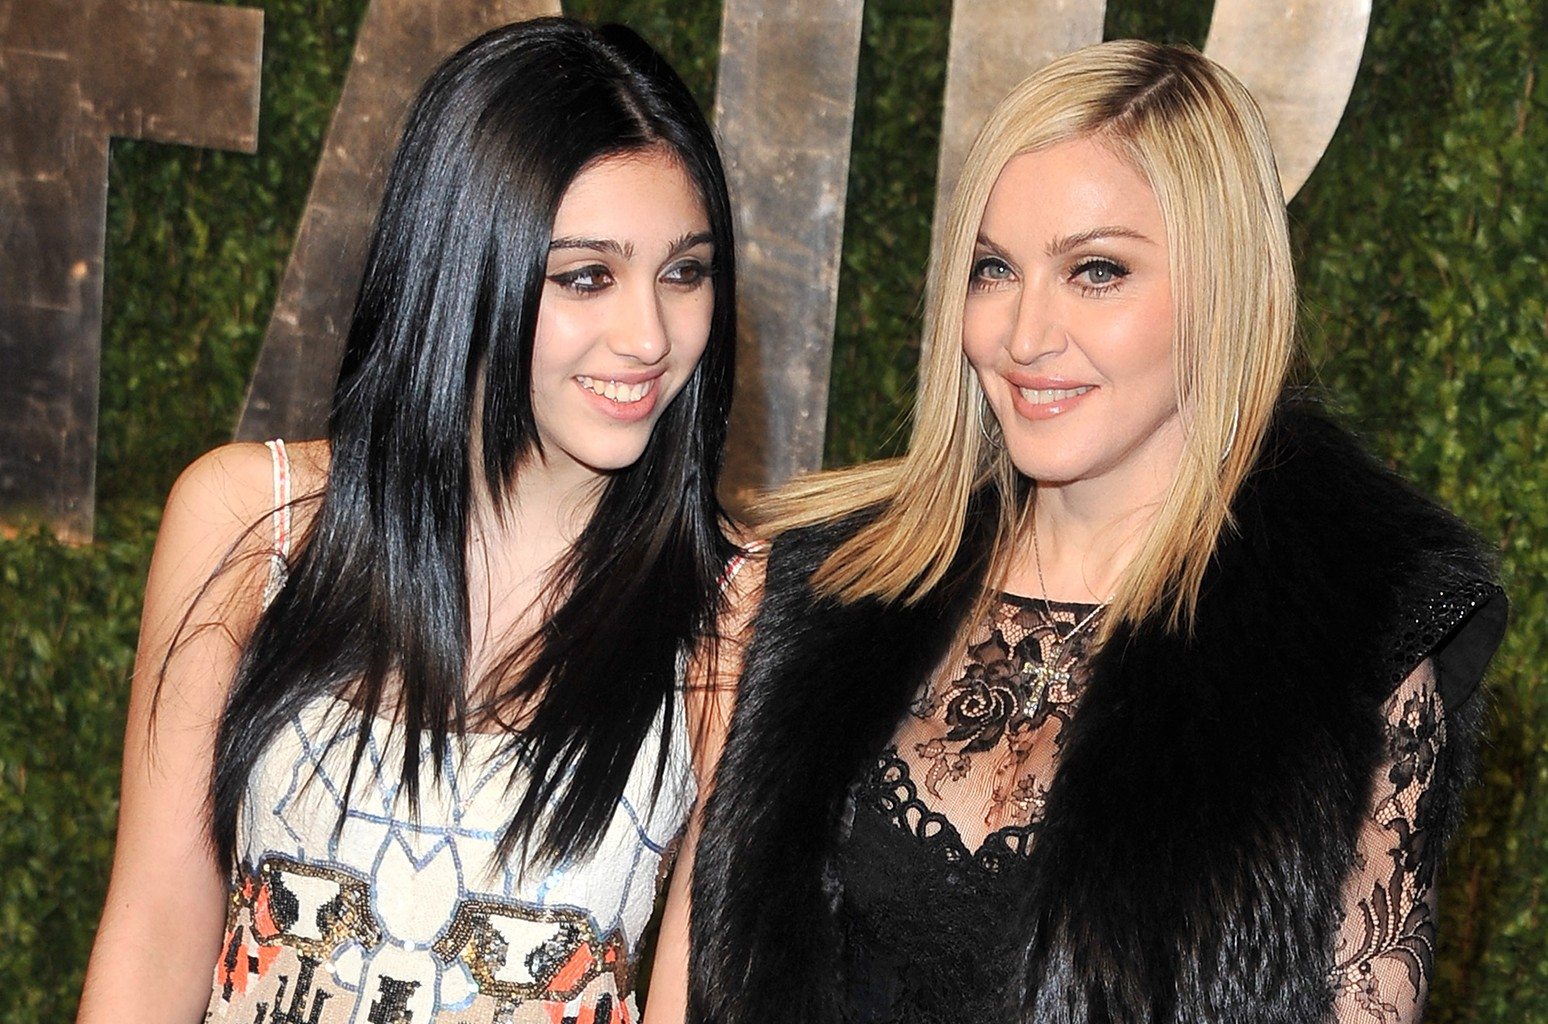 Madonna's Daughter Lourdes Posts 'Thirst Trap' Pics After Making IG Account And Savagely Responds To Her Fans' Comments!